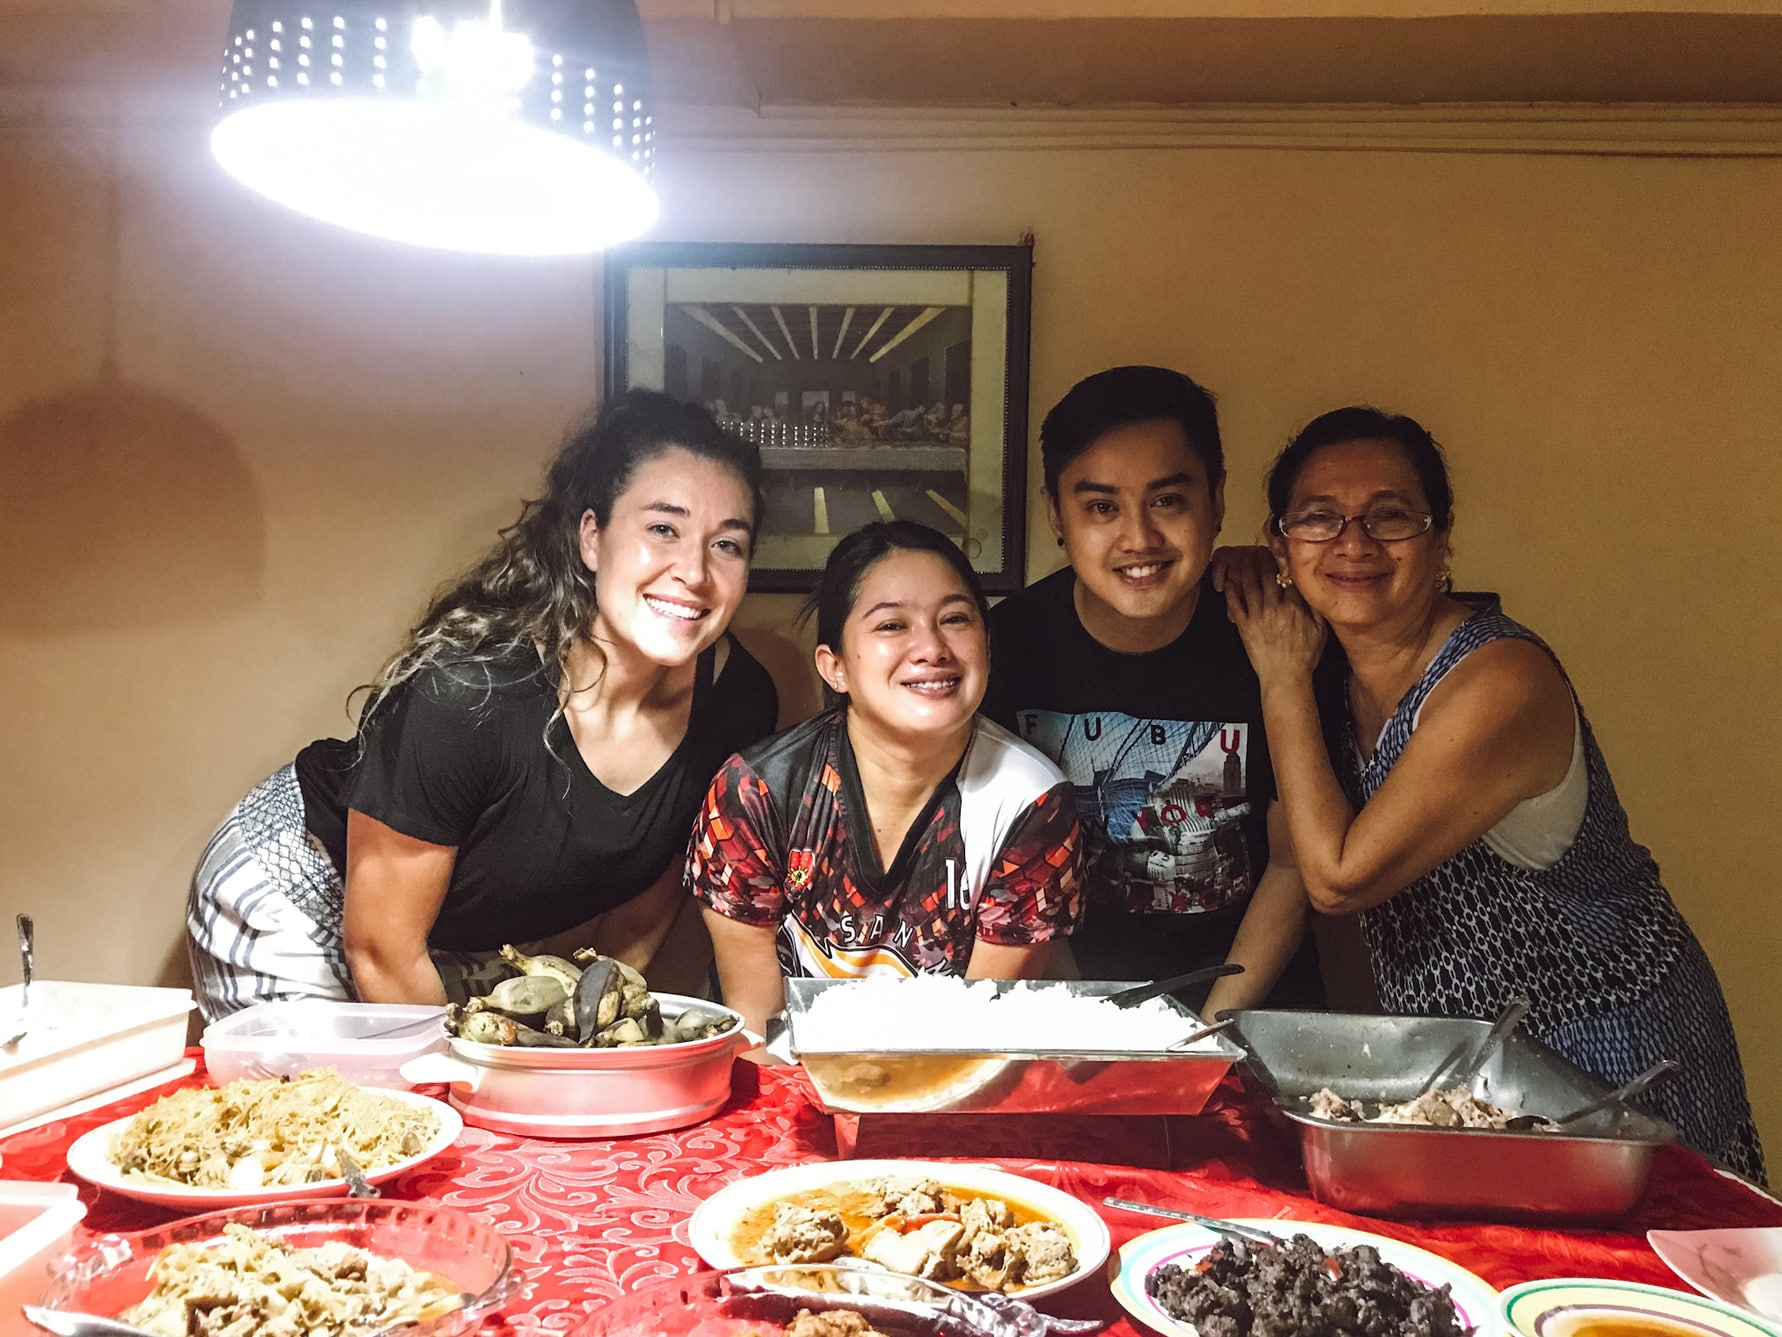 A welcoming family and a friend eating a big meal together in the Philippines